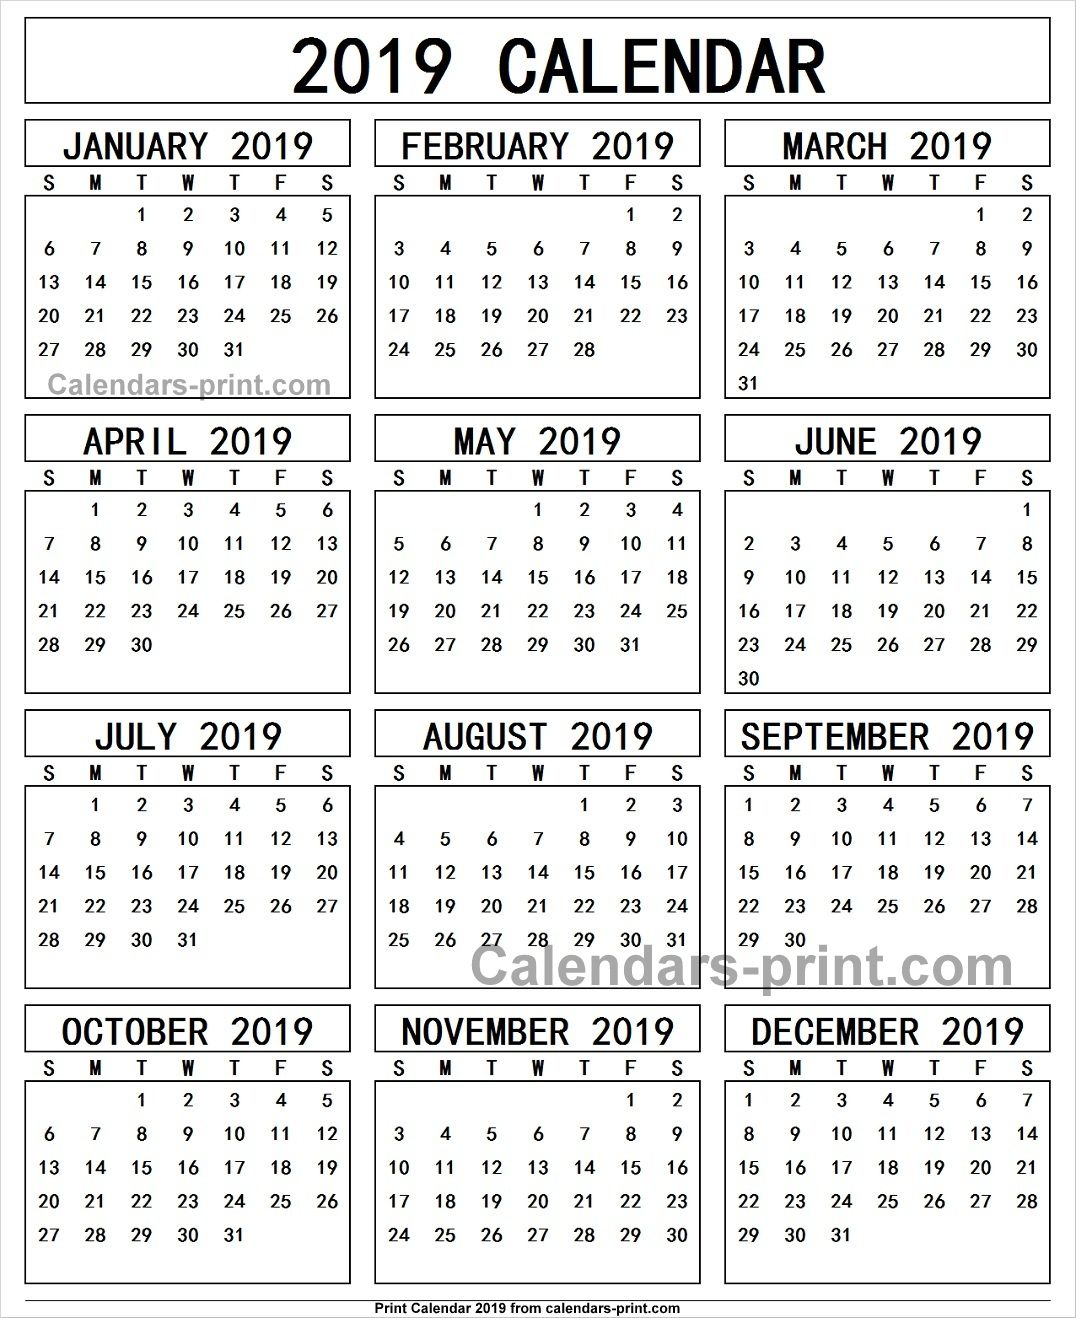 Calendar To Print 2019 Calendar 2019 Free Print | 2019 Yearly Calendar in 2019 | Free